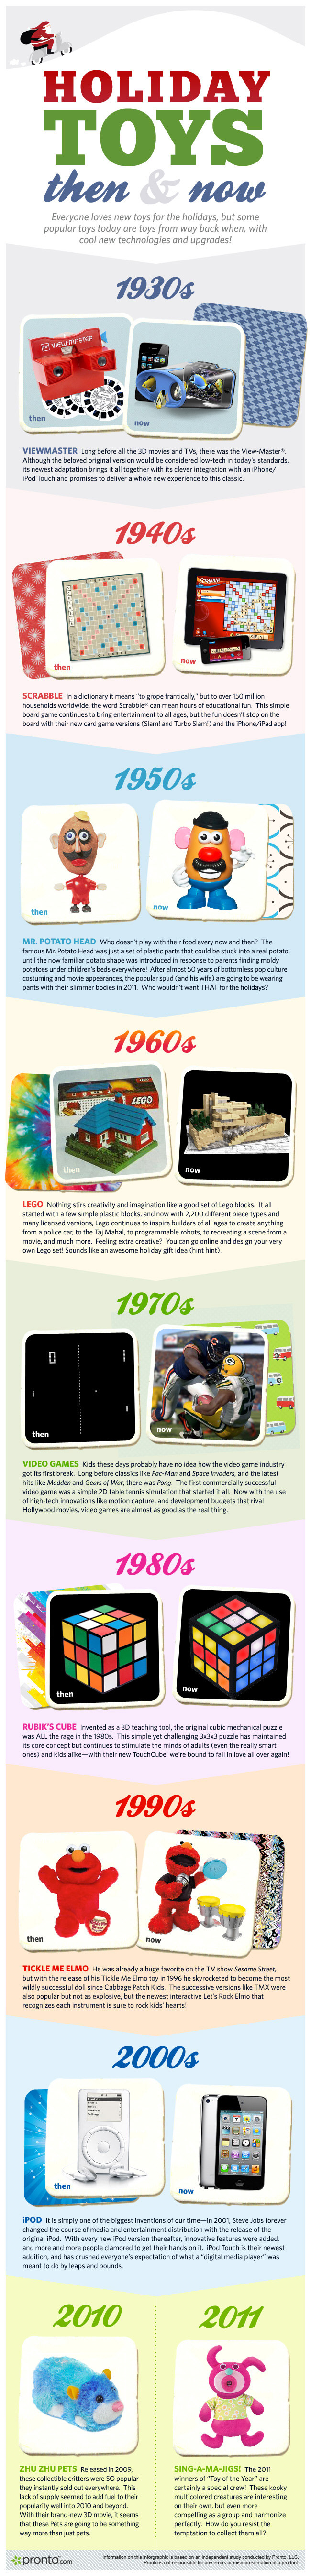 Holiday Toys - Then and Now